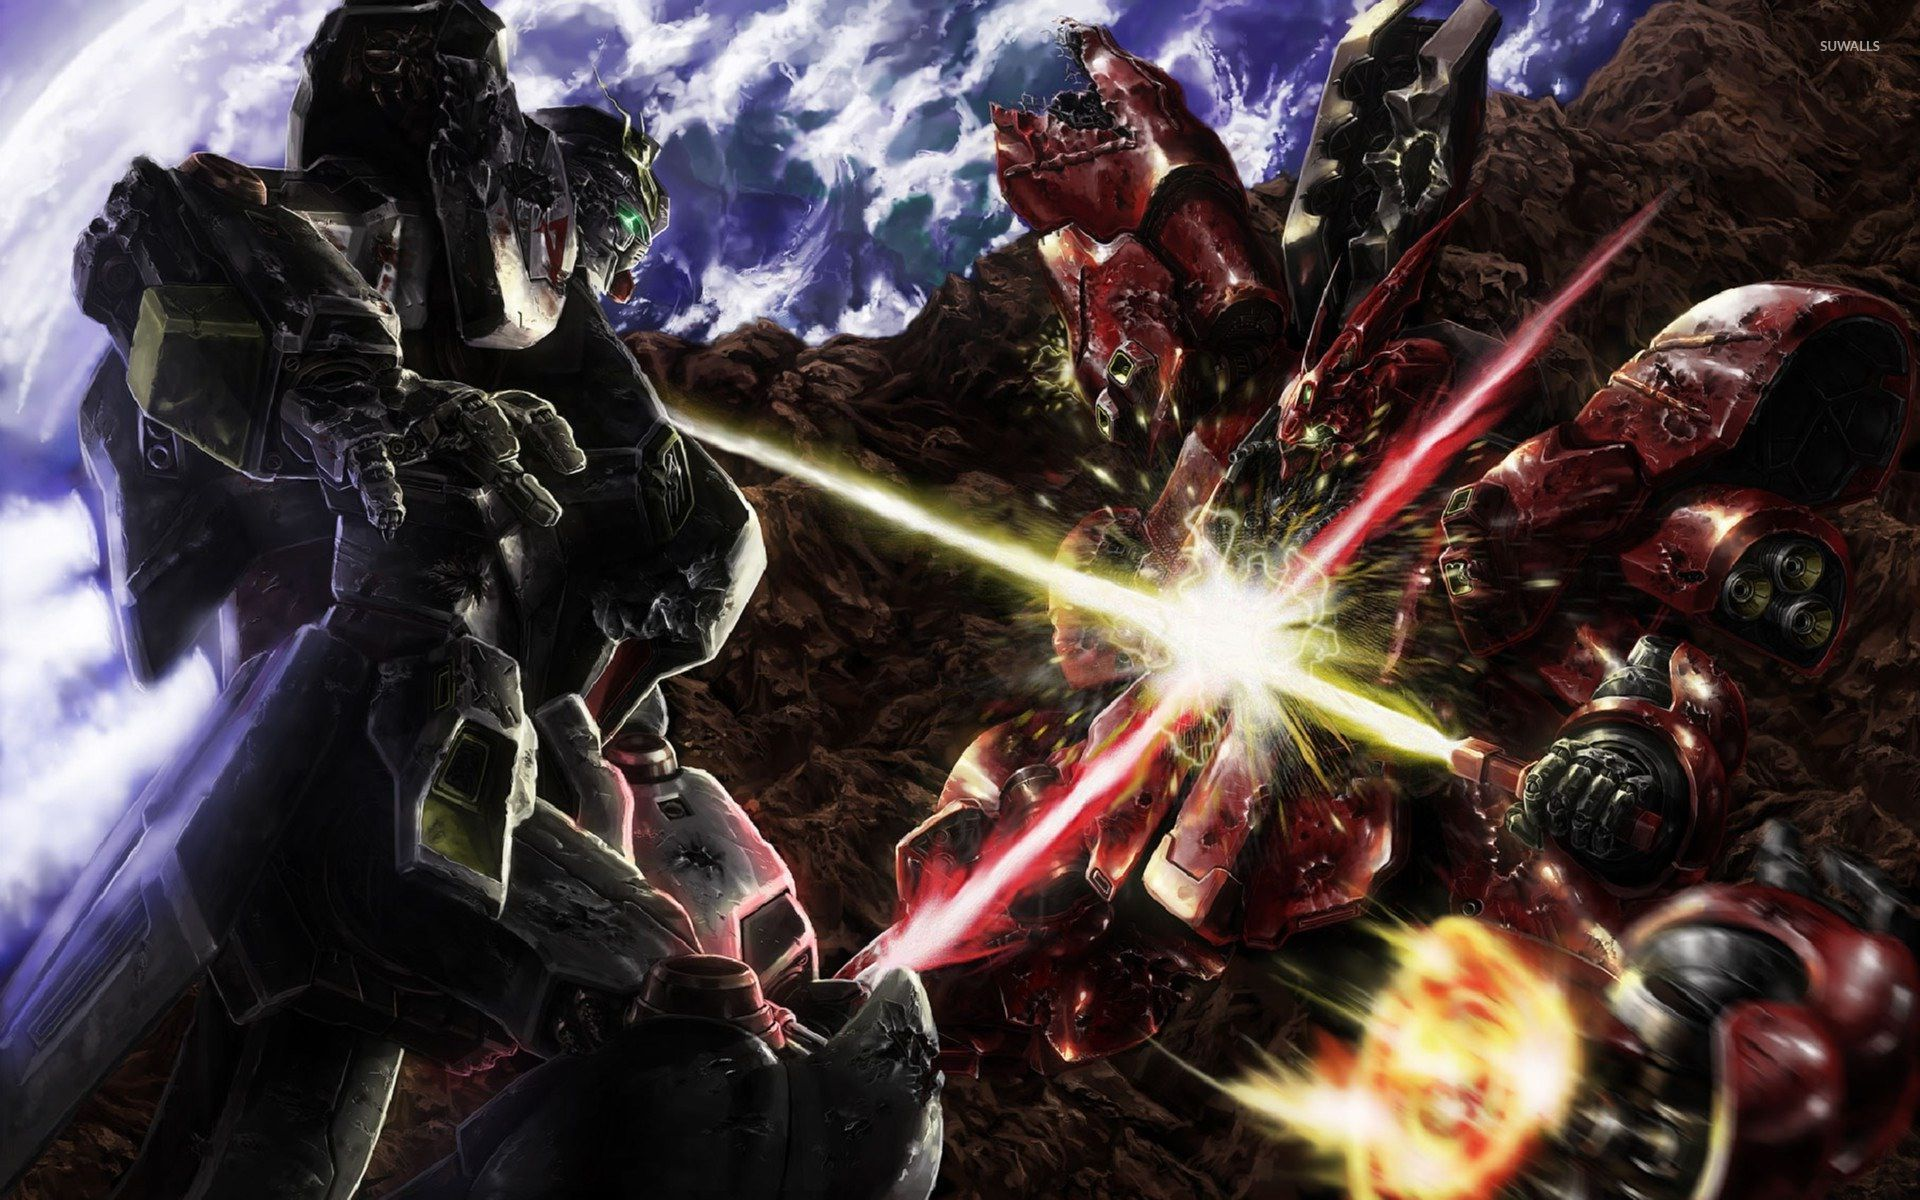 Mobile Suit Gundam Char S Counterattack Wallpaper Anime Wallpapers 30263